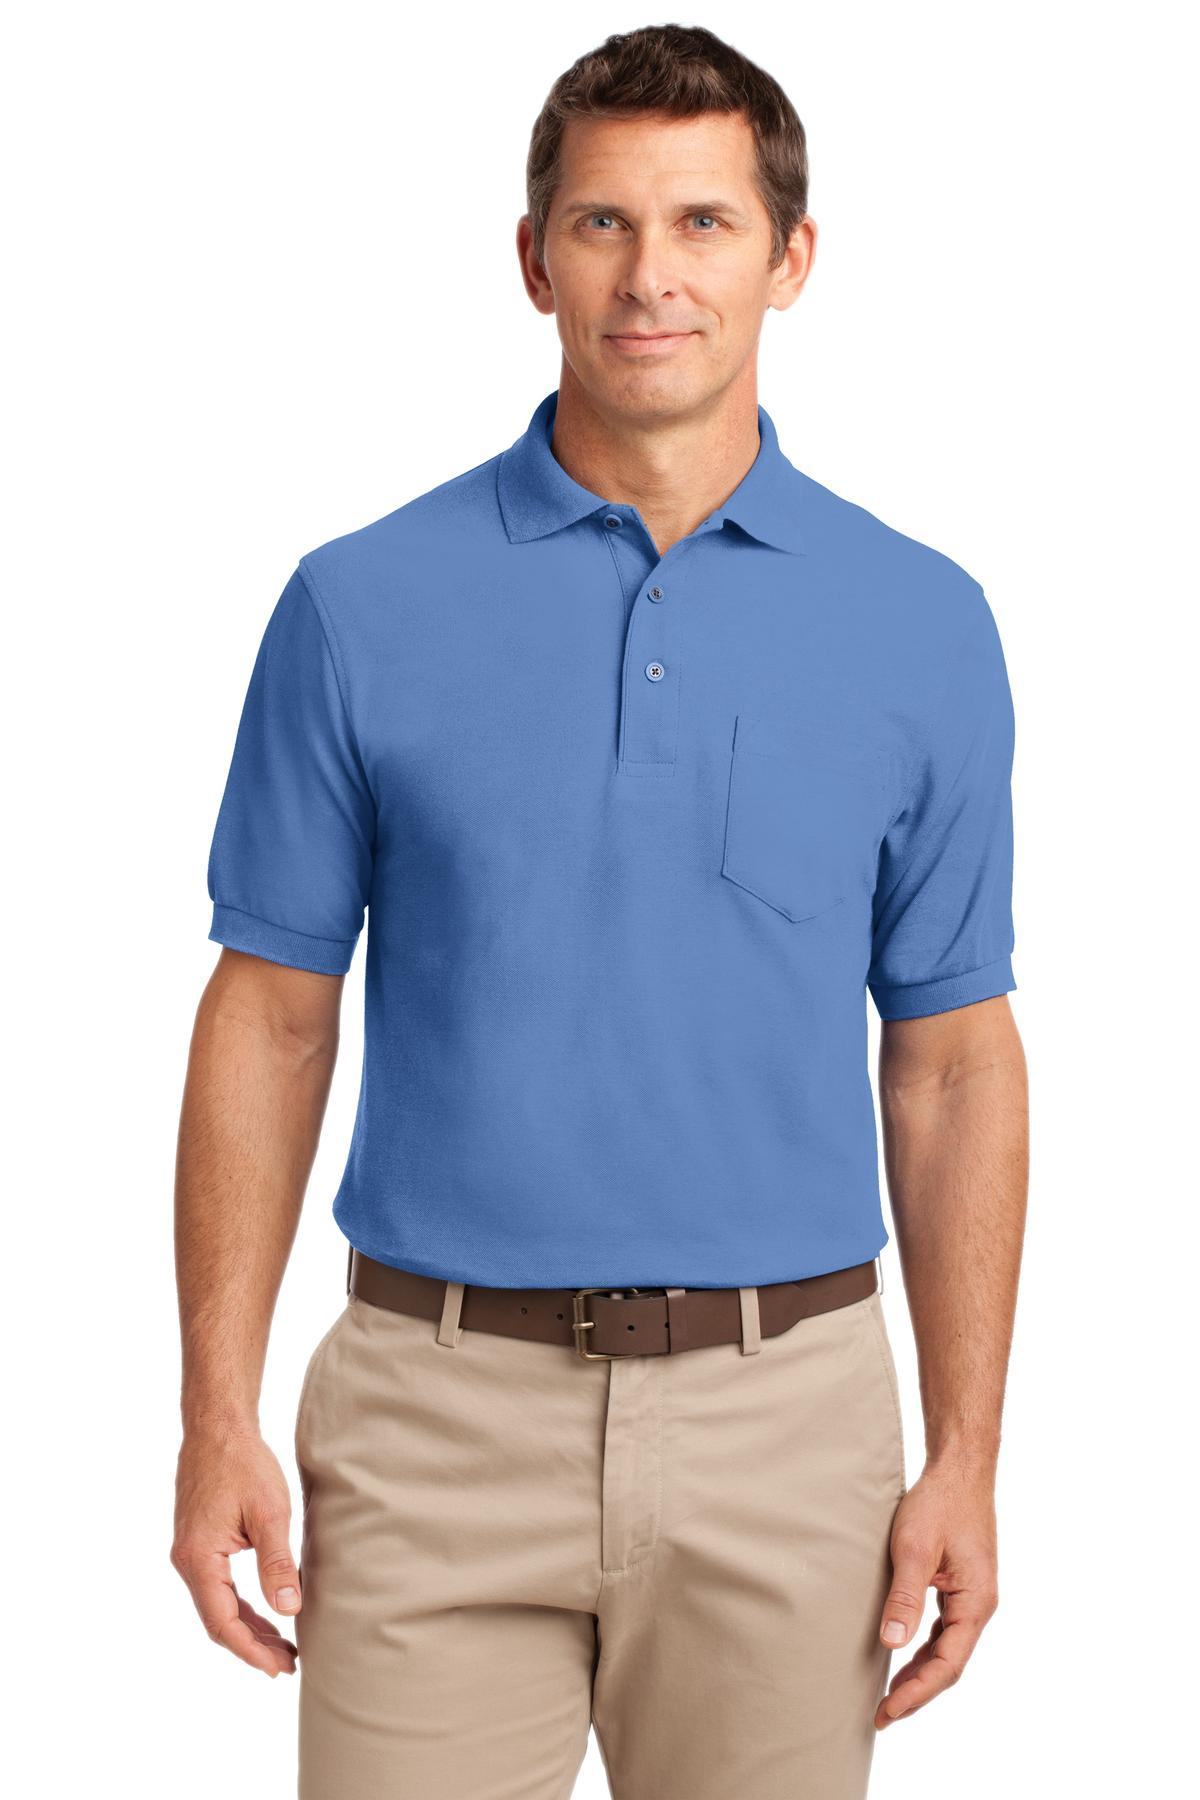 Navy Port Authority Dry Zone® Ottoman Polo.